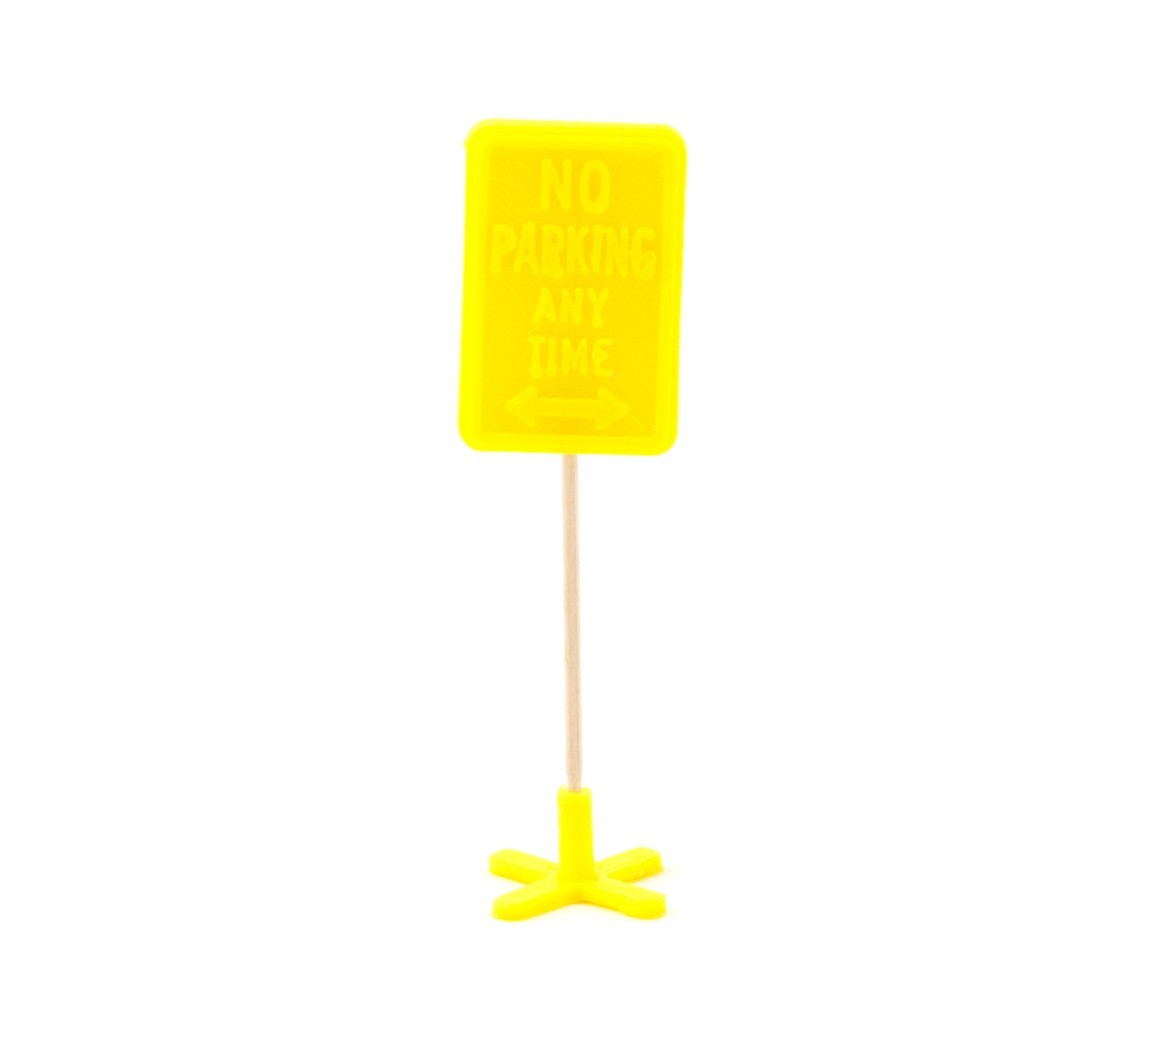 dad355512933513adea5ab2c47ce22d6_1449531082715_11.20.15-product-shoot-129.jpg Download free STL file Traffic Road Signs • 3D printable template, Emiliano_Brignito